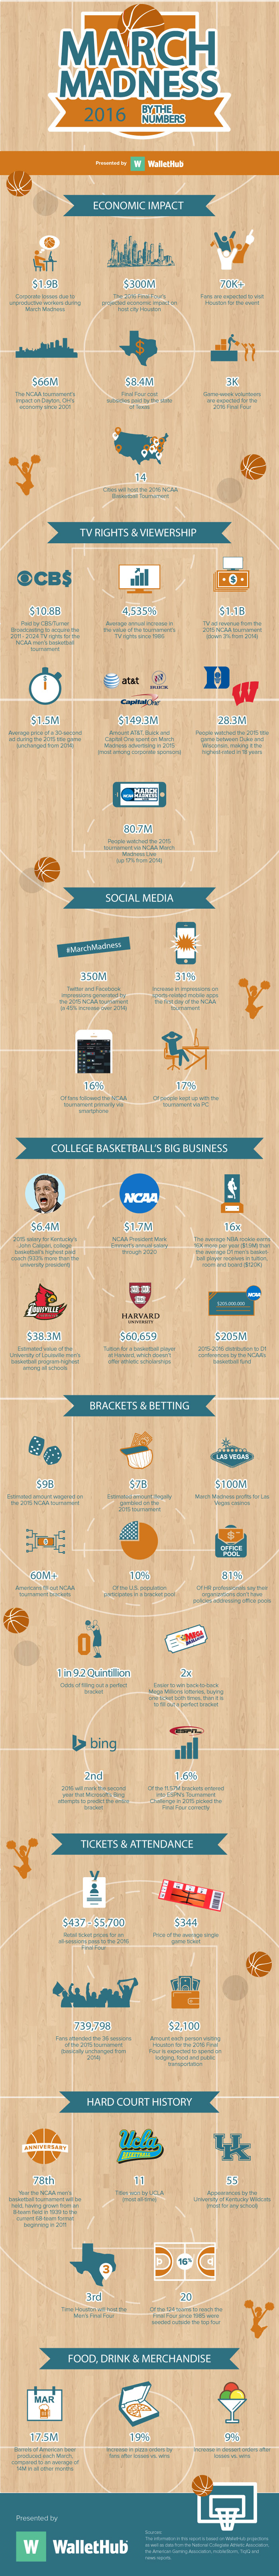 March Madness economic impact 2016